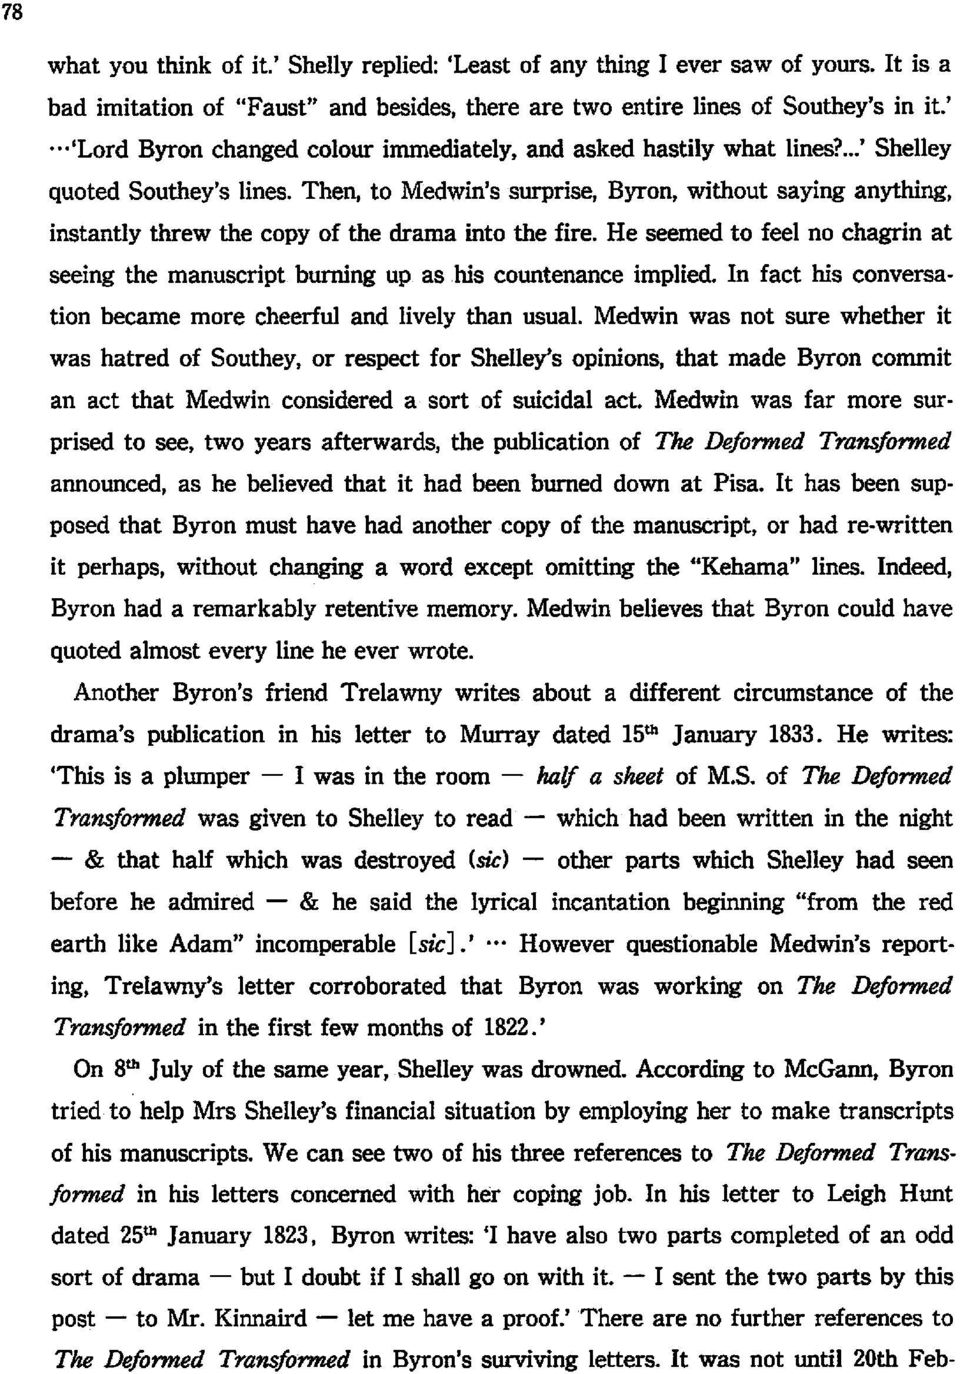 Then, to Medwin's surprise, Byron, without saying anything, instantly threw the copy of the drama into the fire.